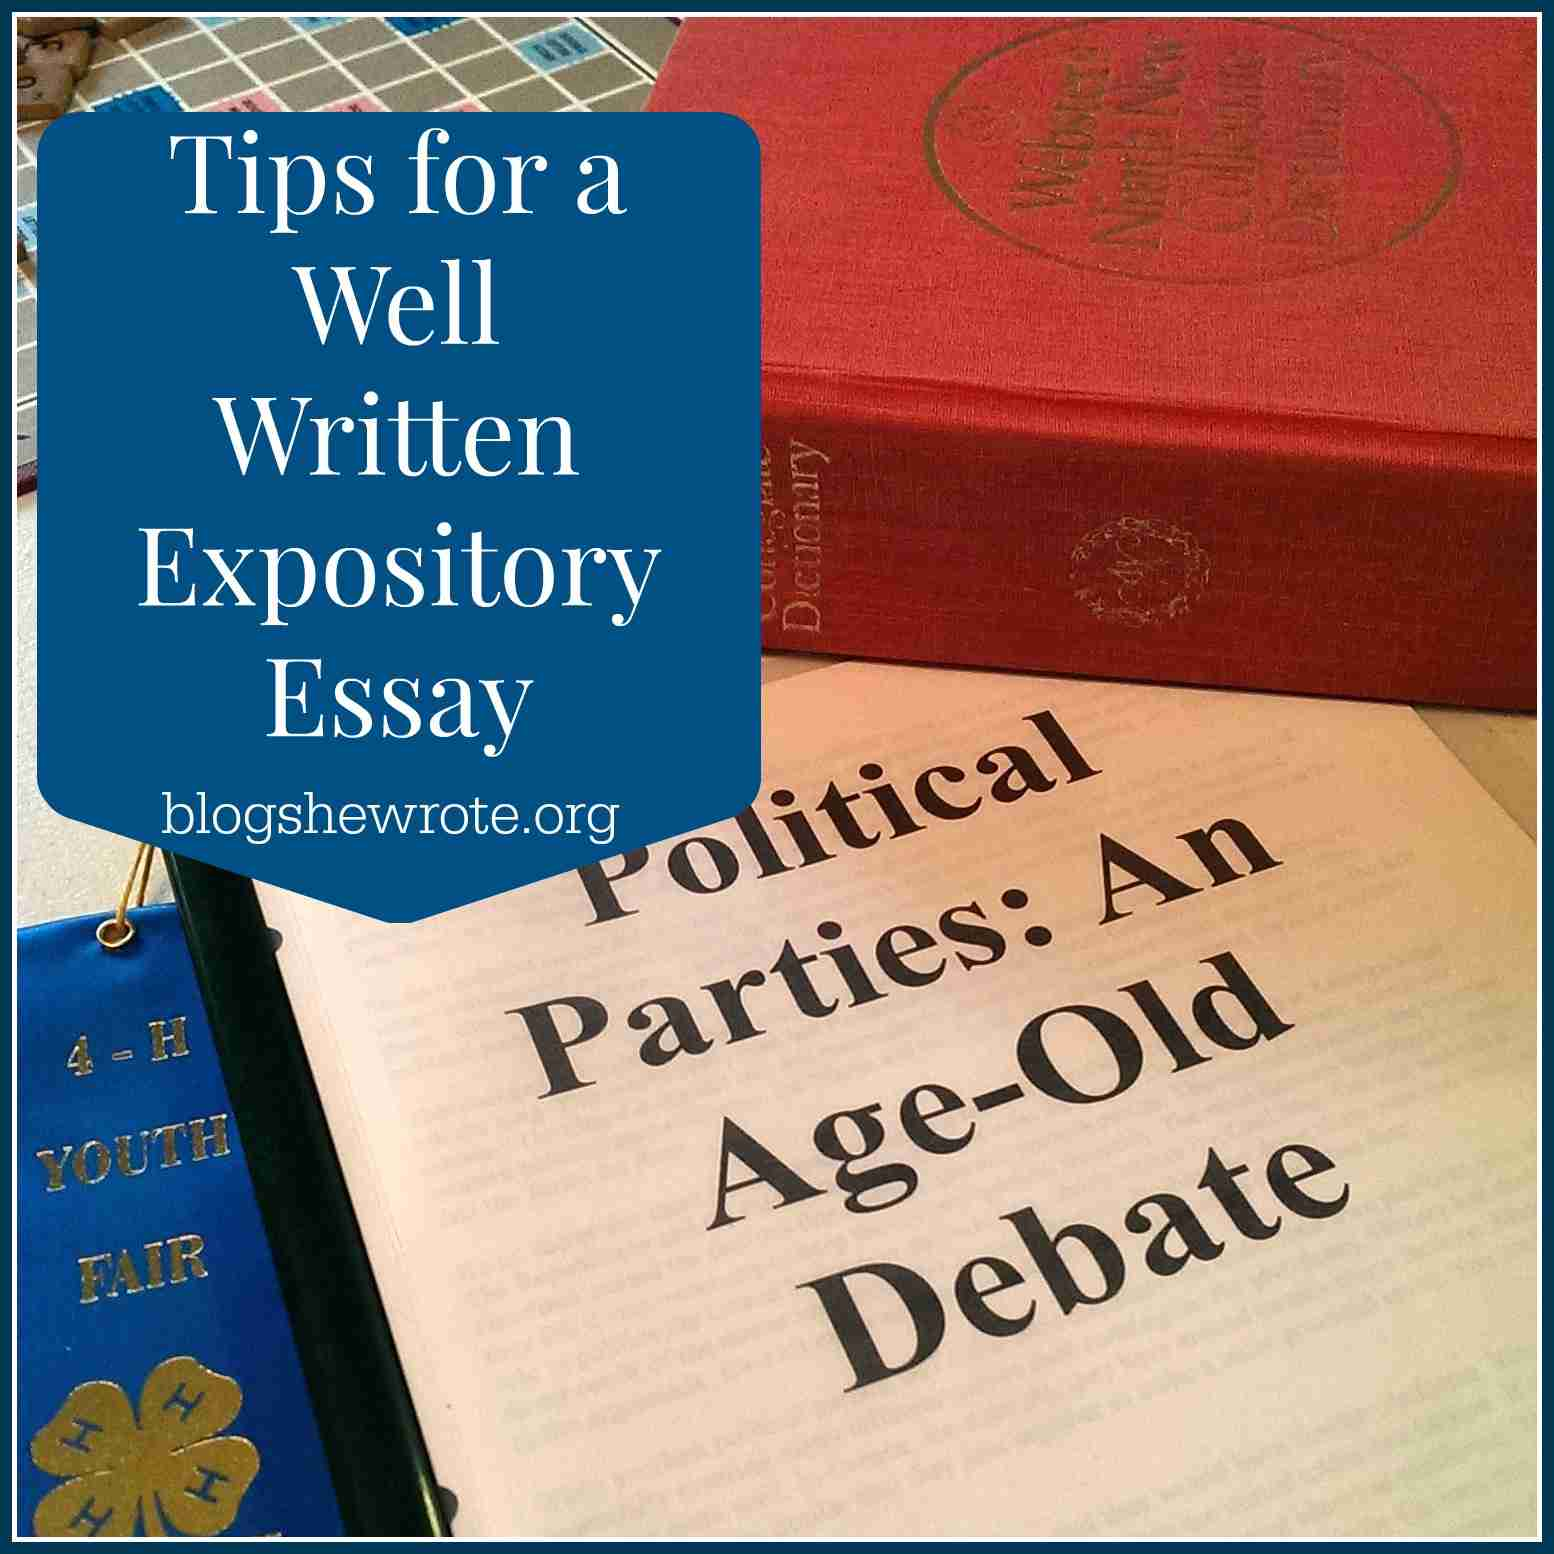 Blog, She Wrote: Tips for a Well Written Expository Essay